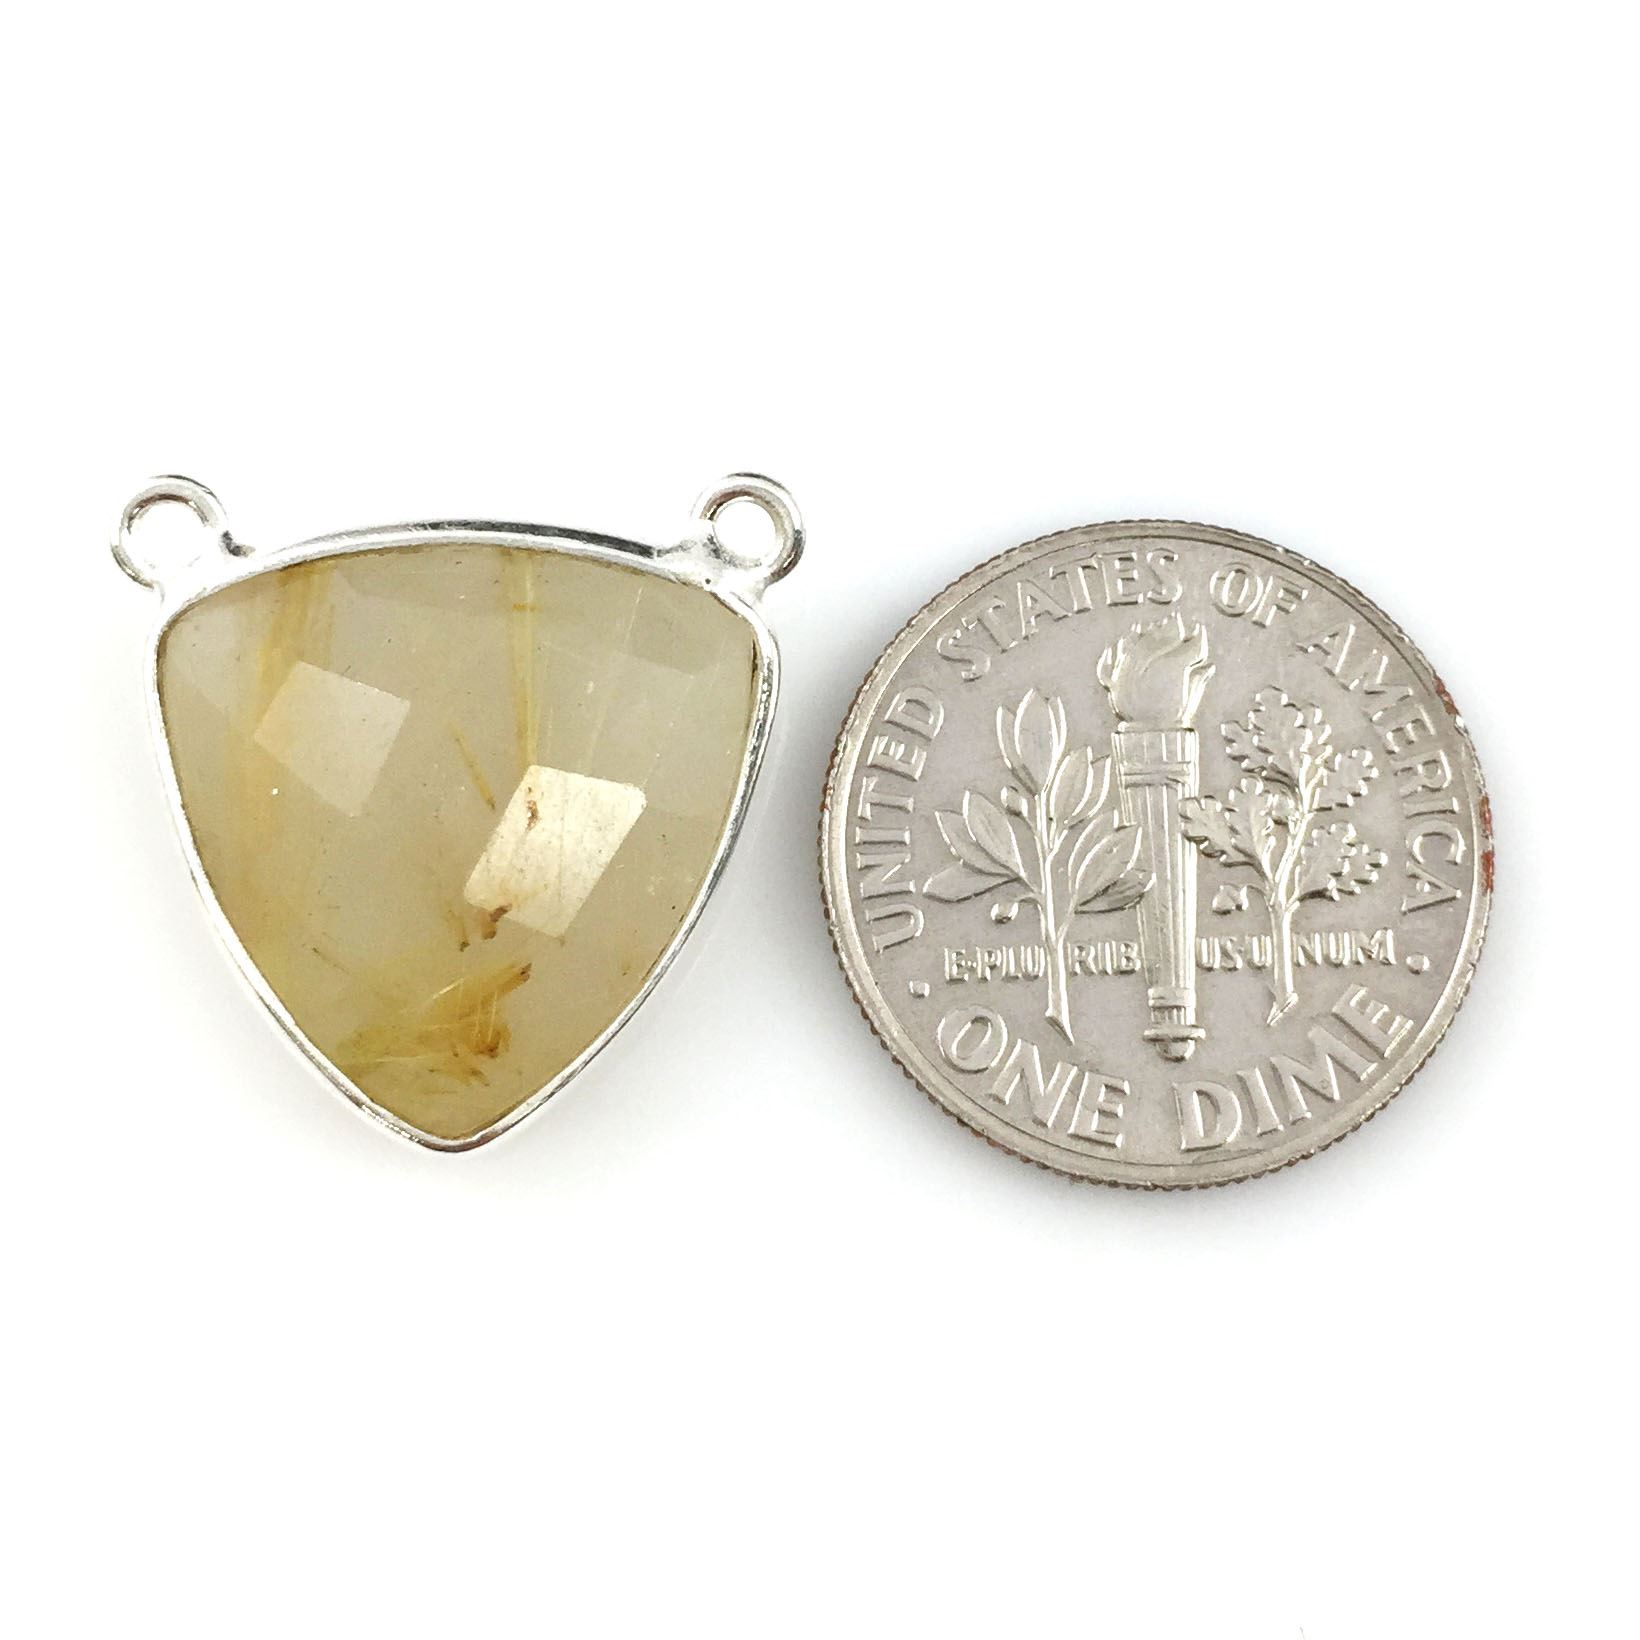 Bezel Gemstone Connector Pendant - Gold Rutilated Quartz - Sterling Silver - Small Trillion Shaped Faceted - 15mm - 1 piece